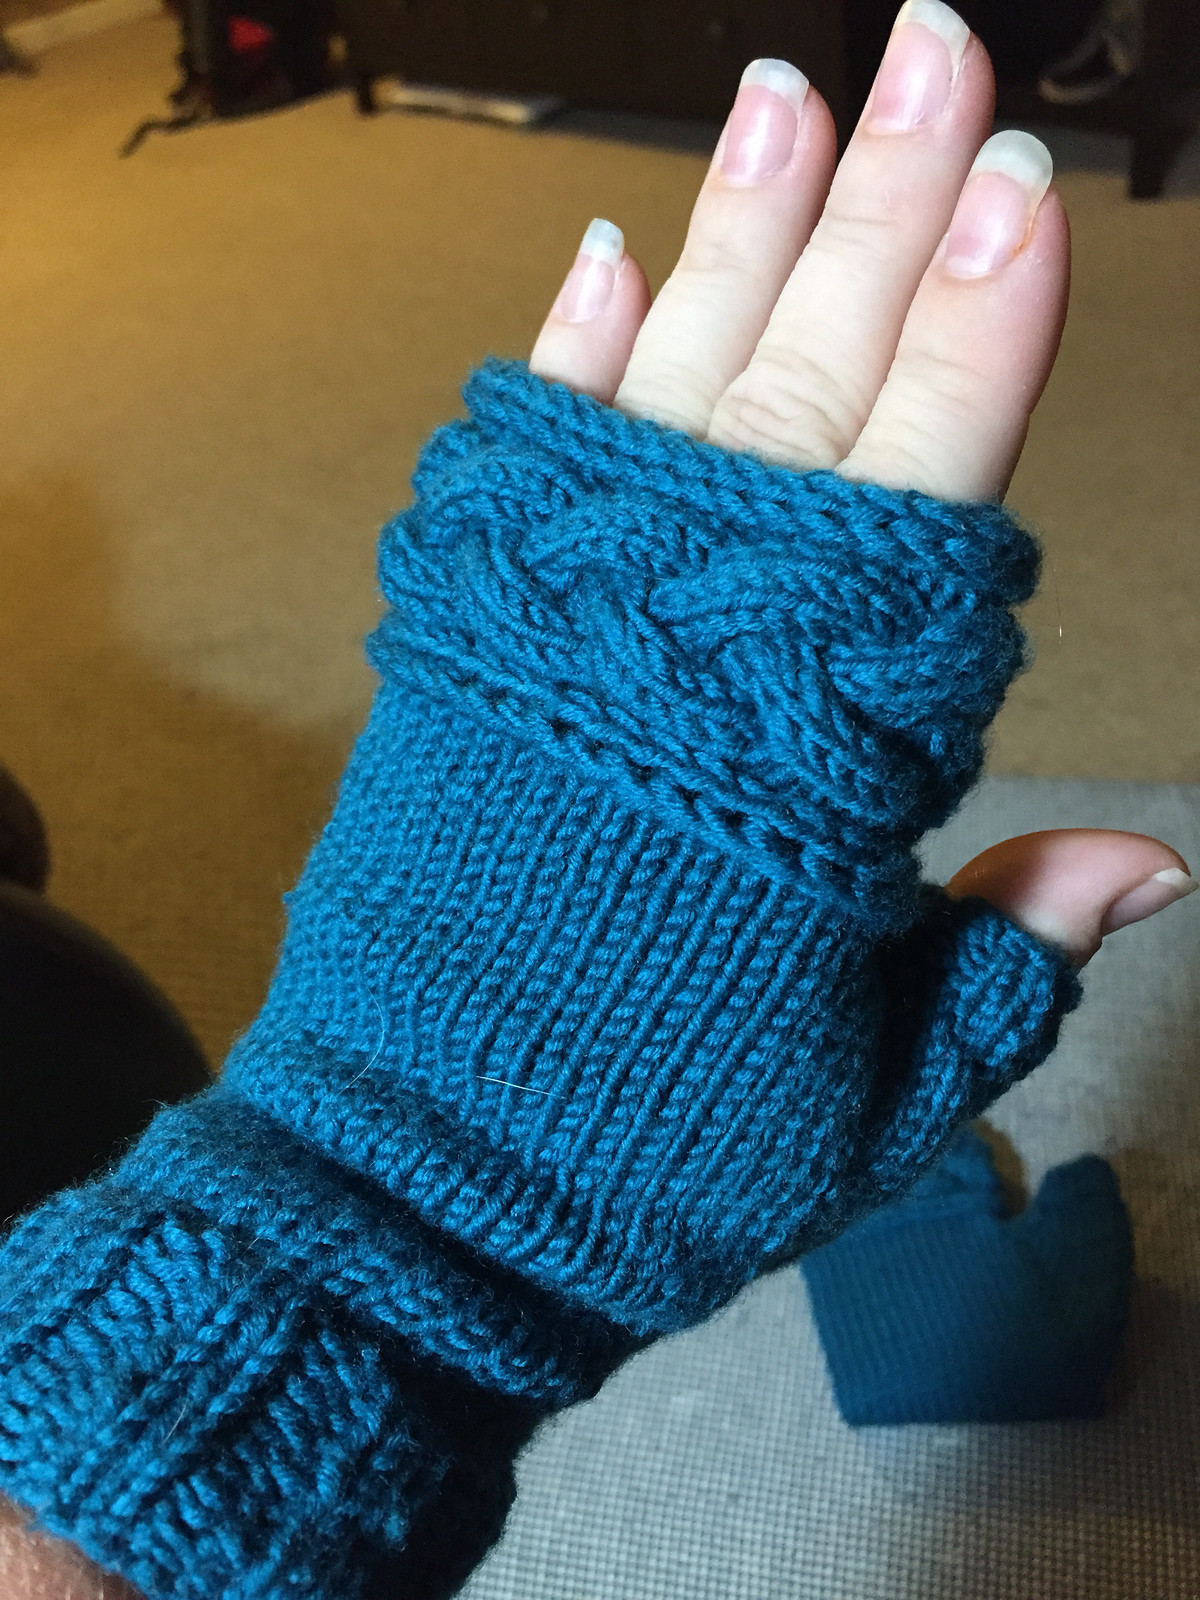 Fingerless Gloves Knitting Pattern Awesome Twisty Mitts Knitting Patterns Of Incredible 50 Pics Fingerless Gloves Knitting Pattern